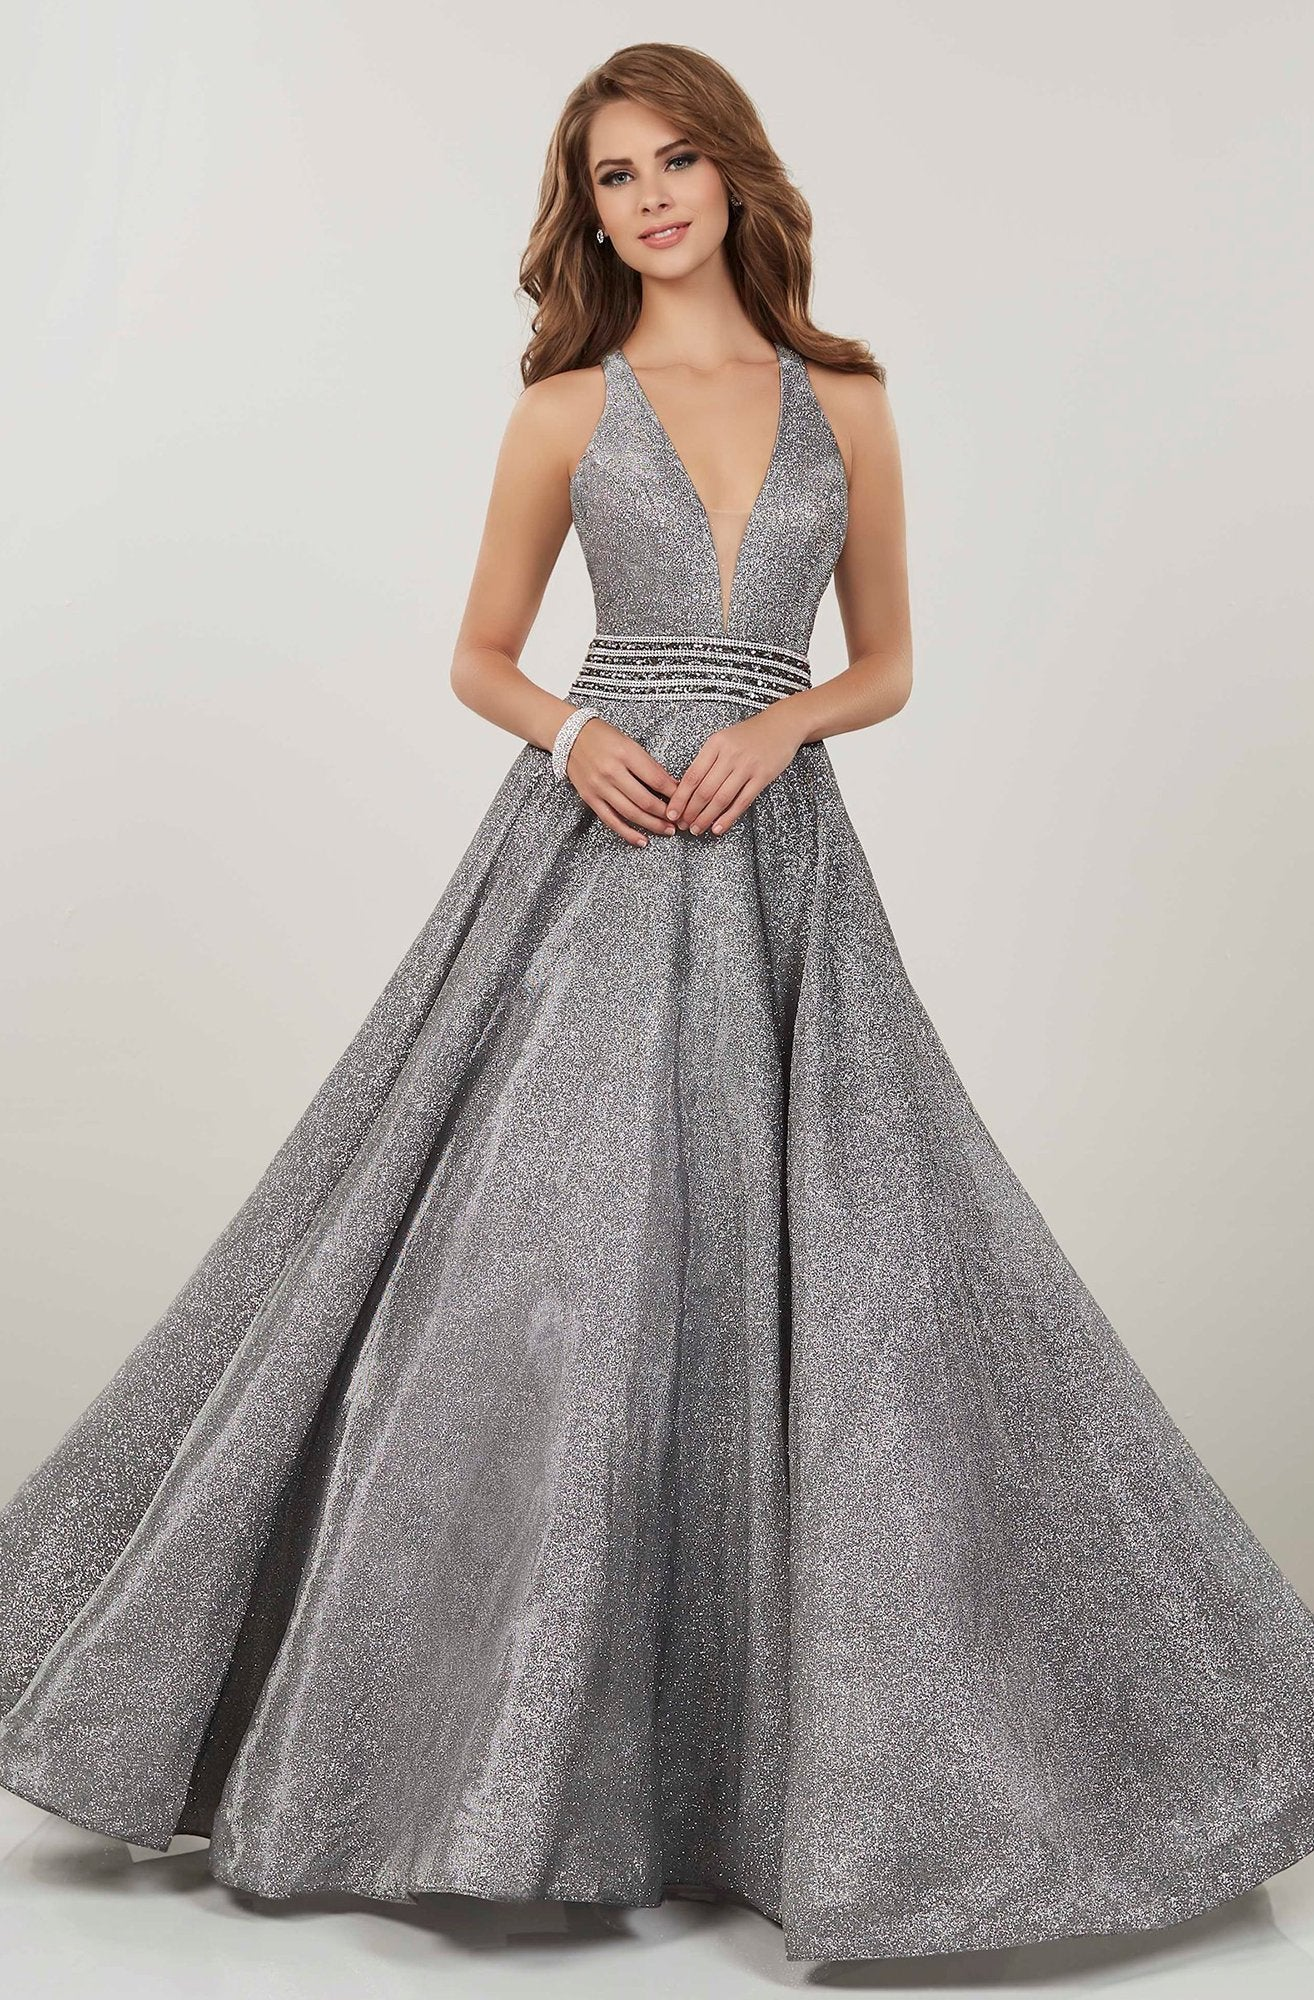 Panoply - 14926 Plunging V-Neck Embellished Ballgown In Gray